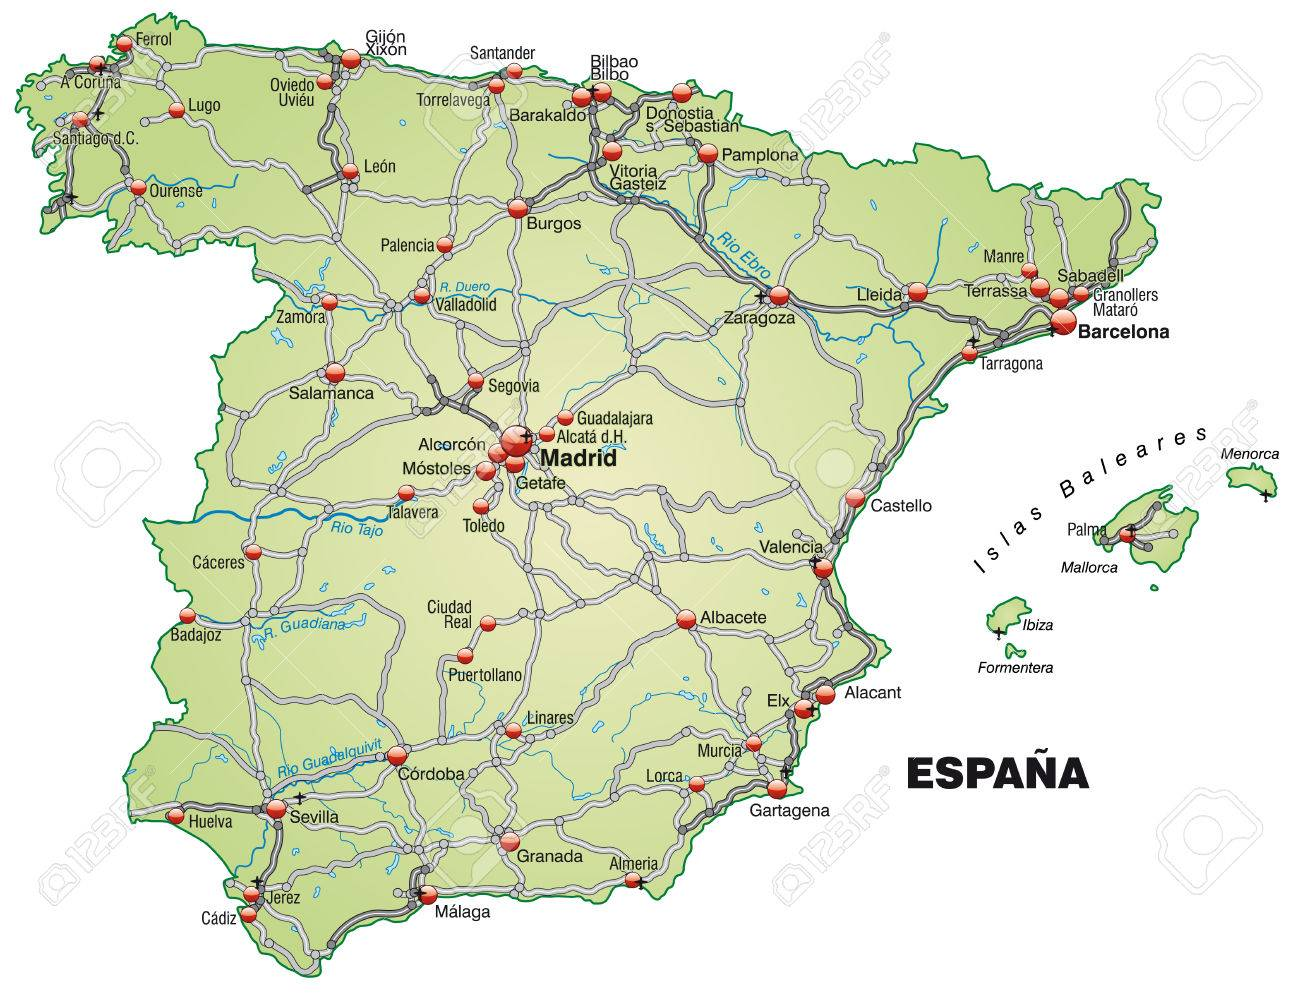 Map Of Spain Valladolid.Map Of Spain With Highways In Pastel Green